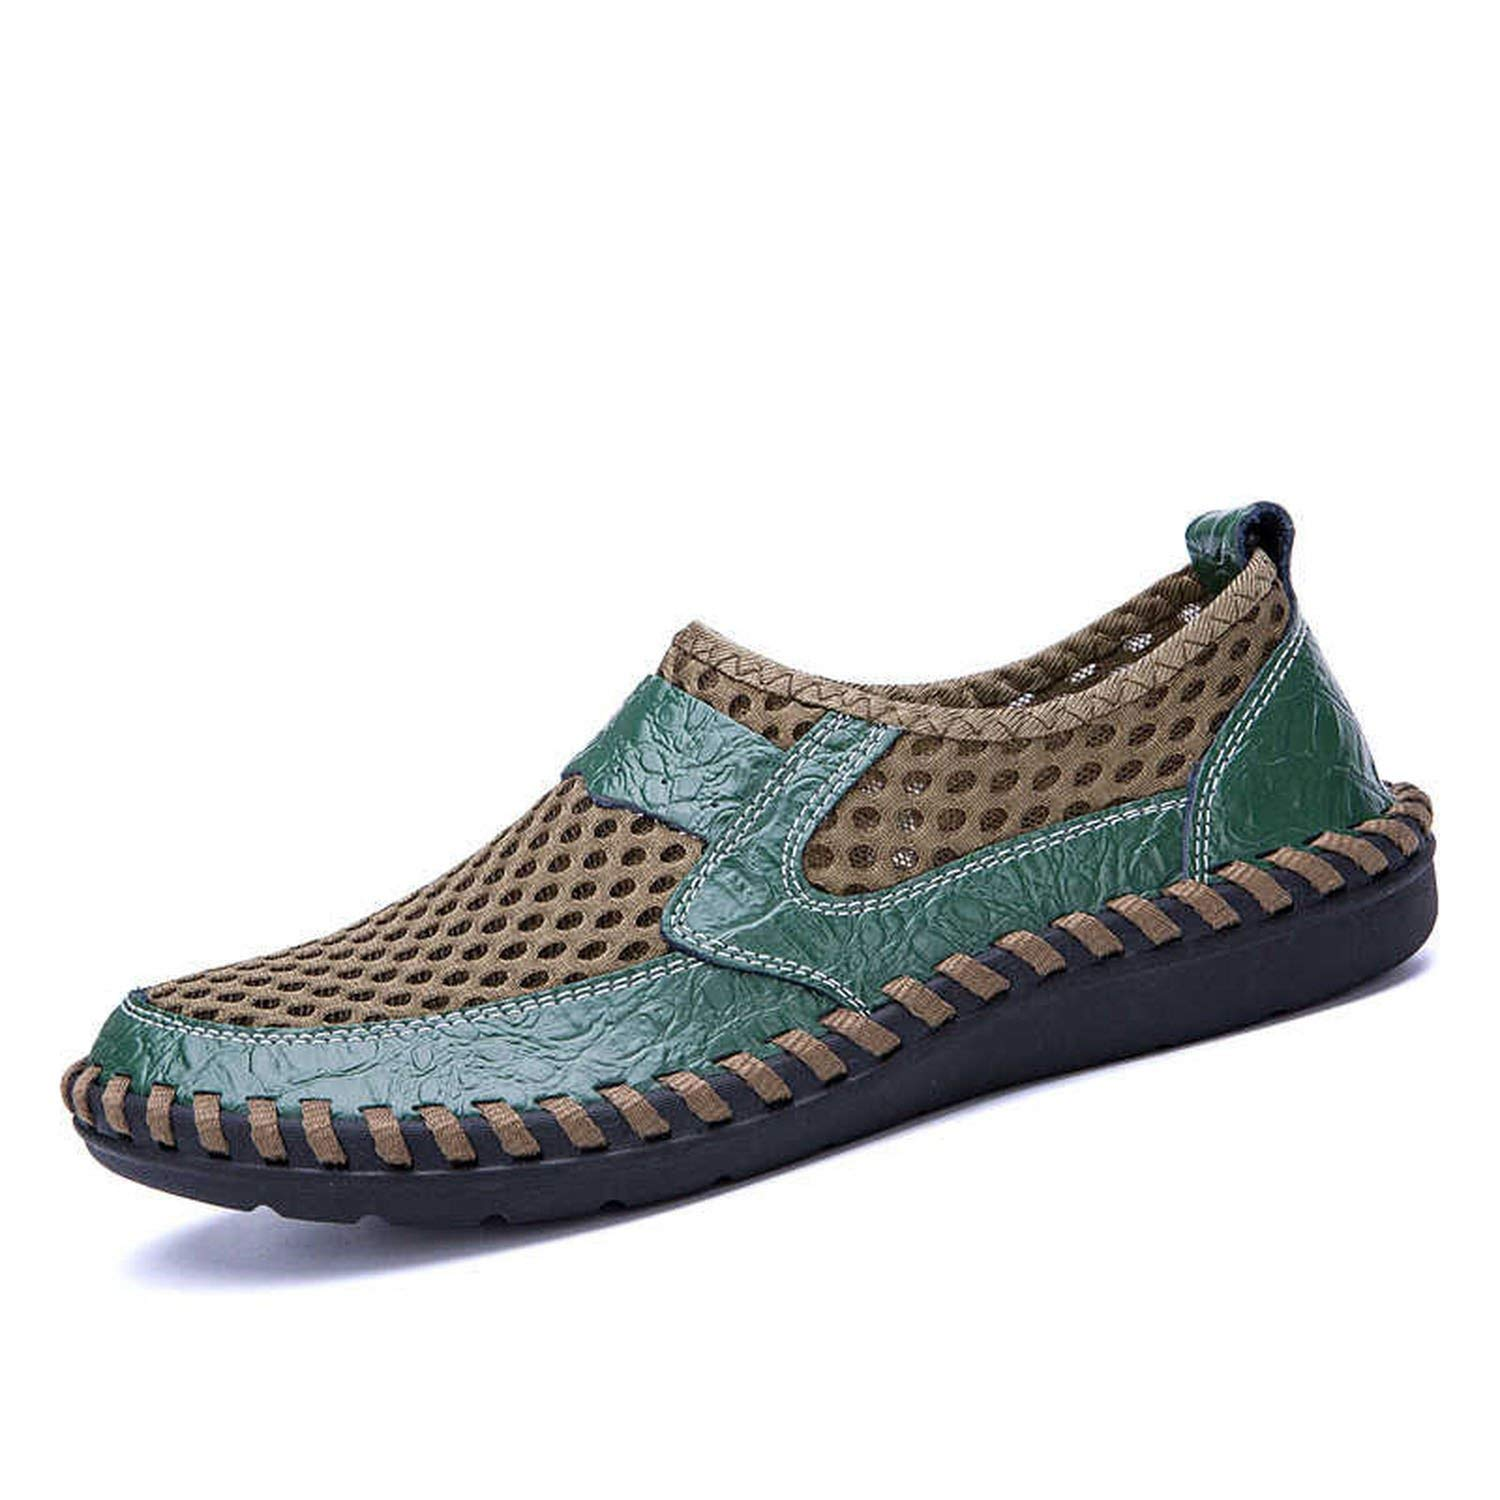 2052037e48e55 The small cat 2019 Summer Breathable Mesh Mens Casual Shoes Slip On ...